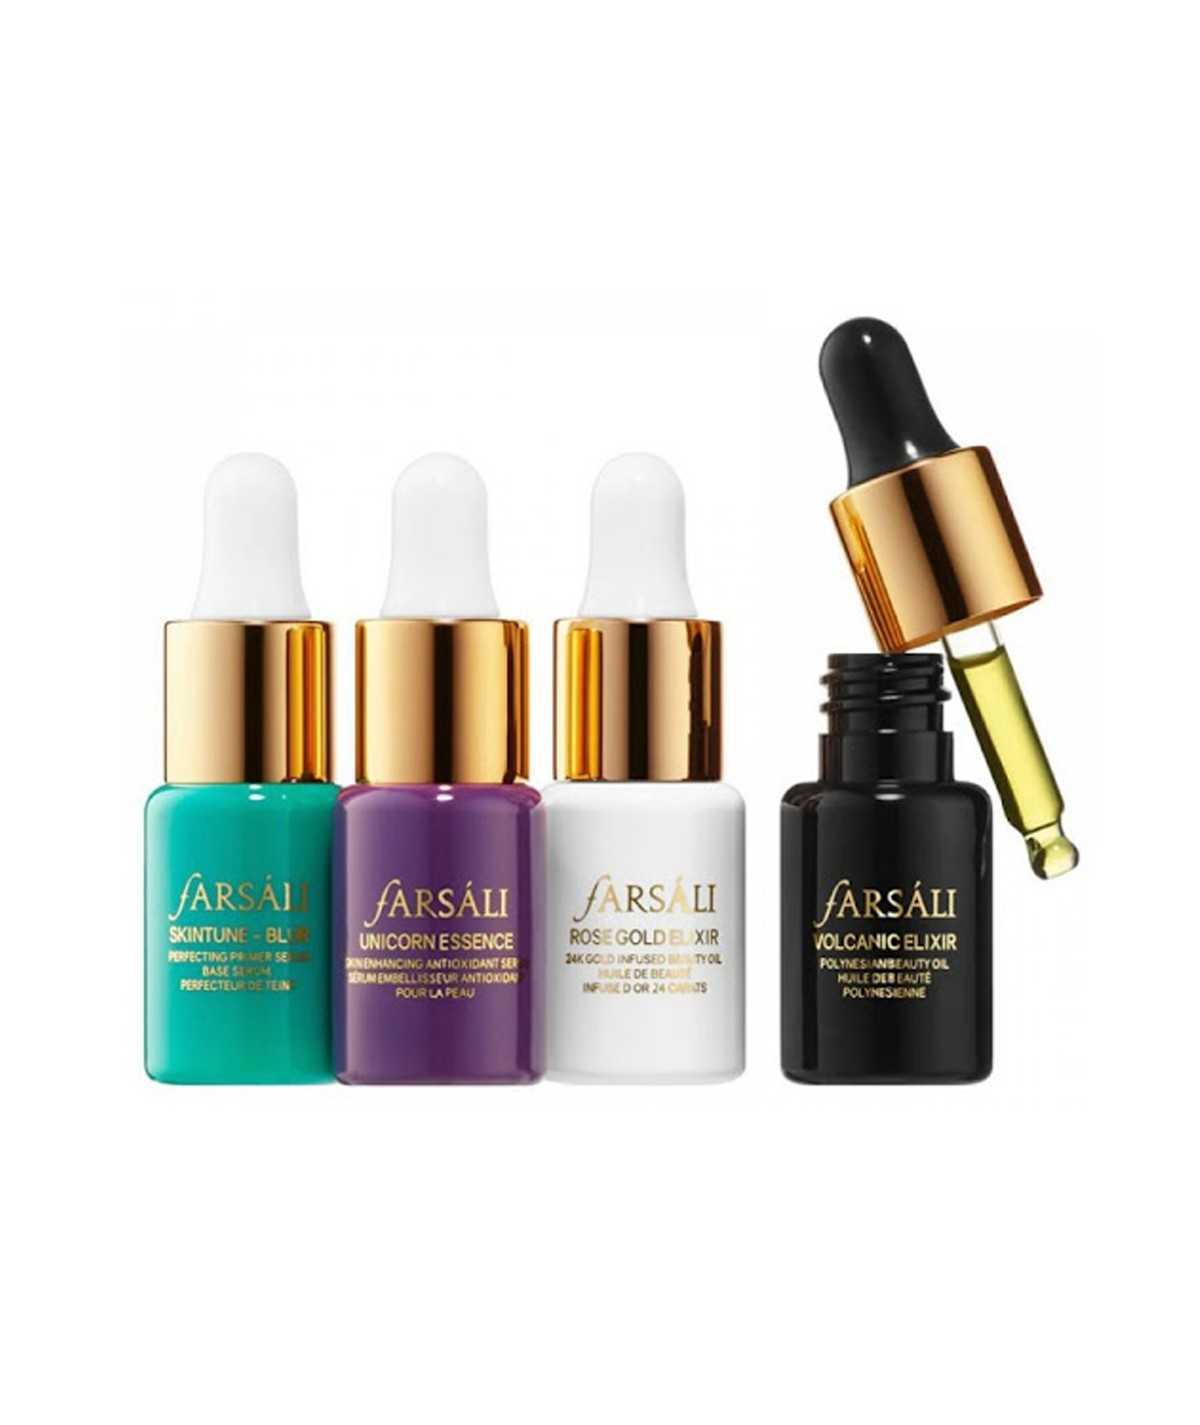 Farsali Skin Goals - A set of four